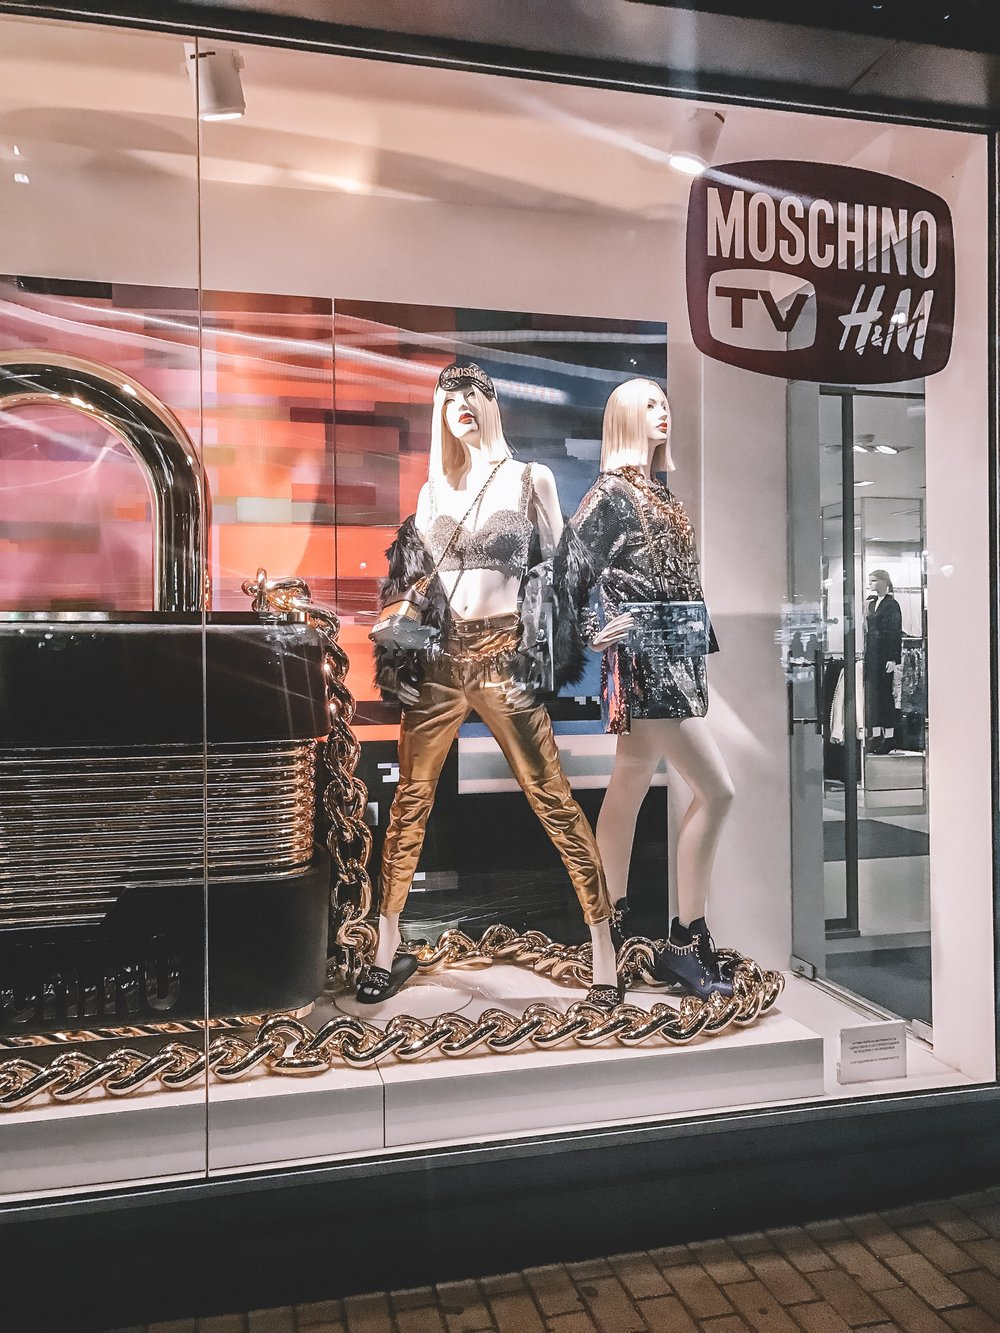 hm tv moschino new designer collection fashion style  fashionblog fashionblogger мода блогър shop shopping